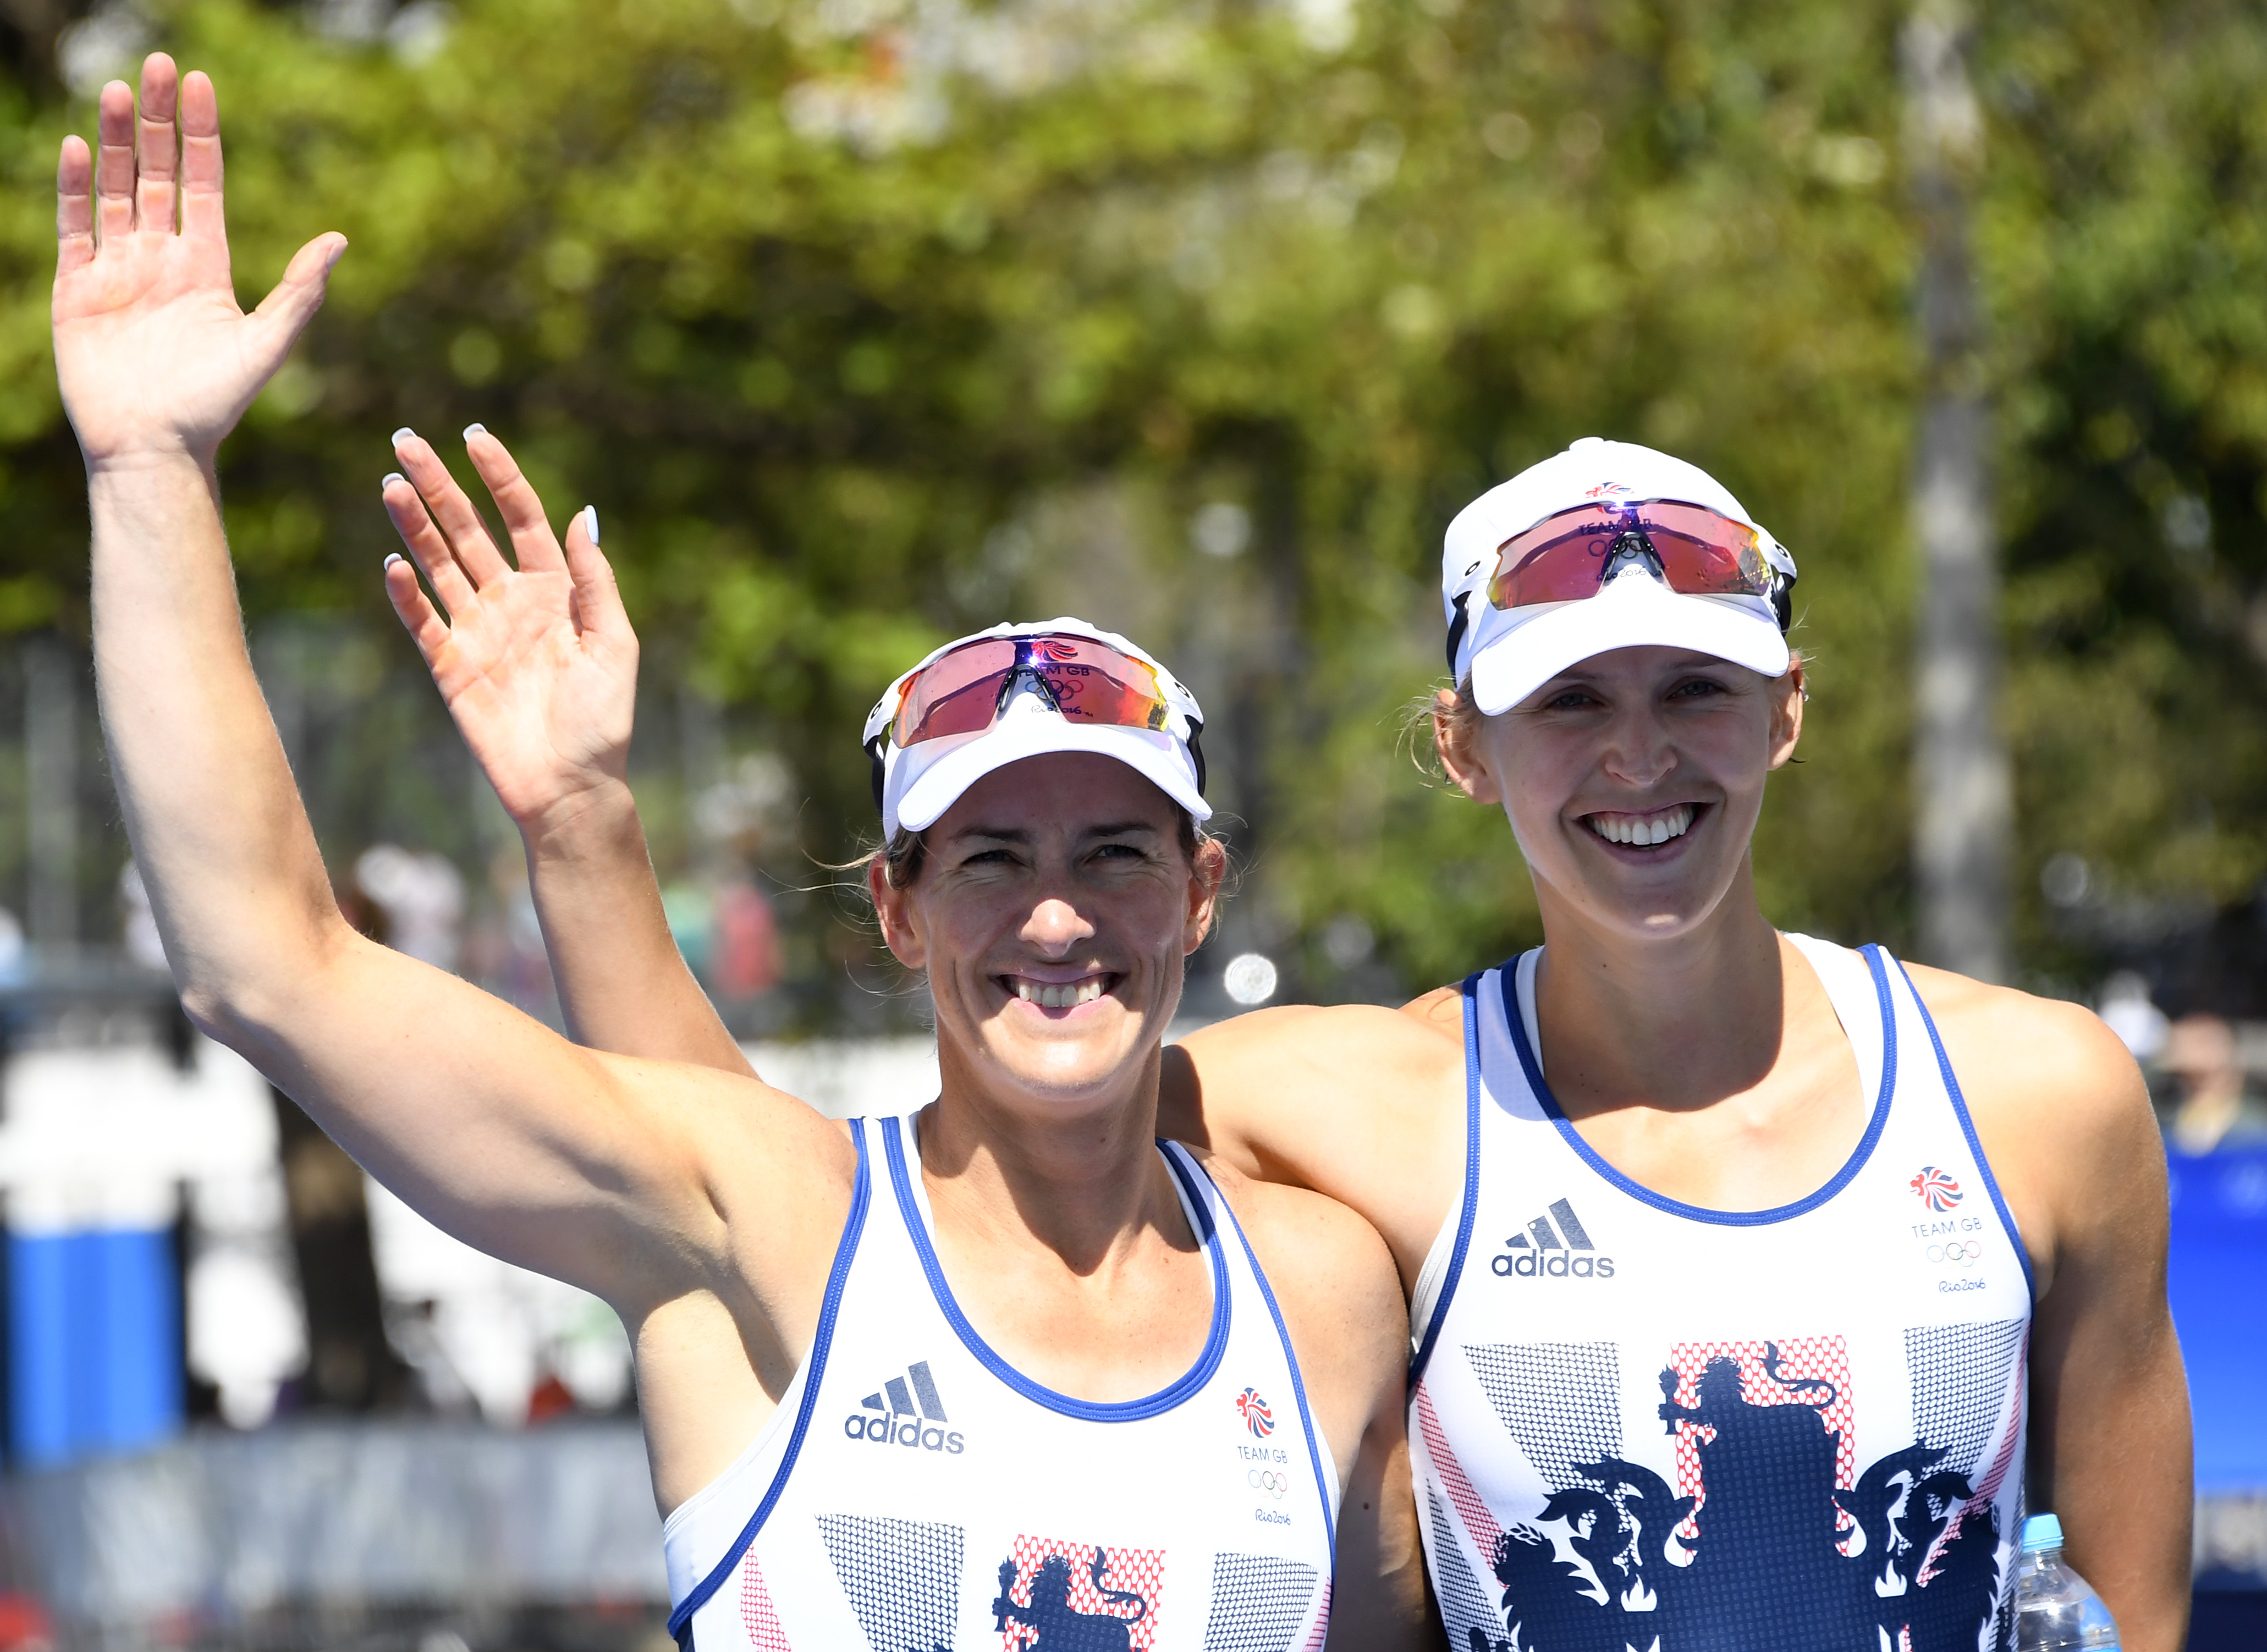 Katherine Grainger becomes Britain's most decorated female Olympian with Rio 2016 silver alongside Victoria Thornley